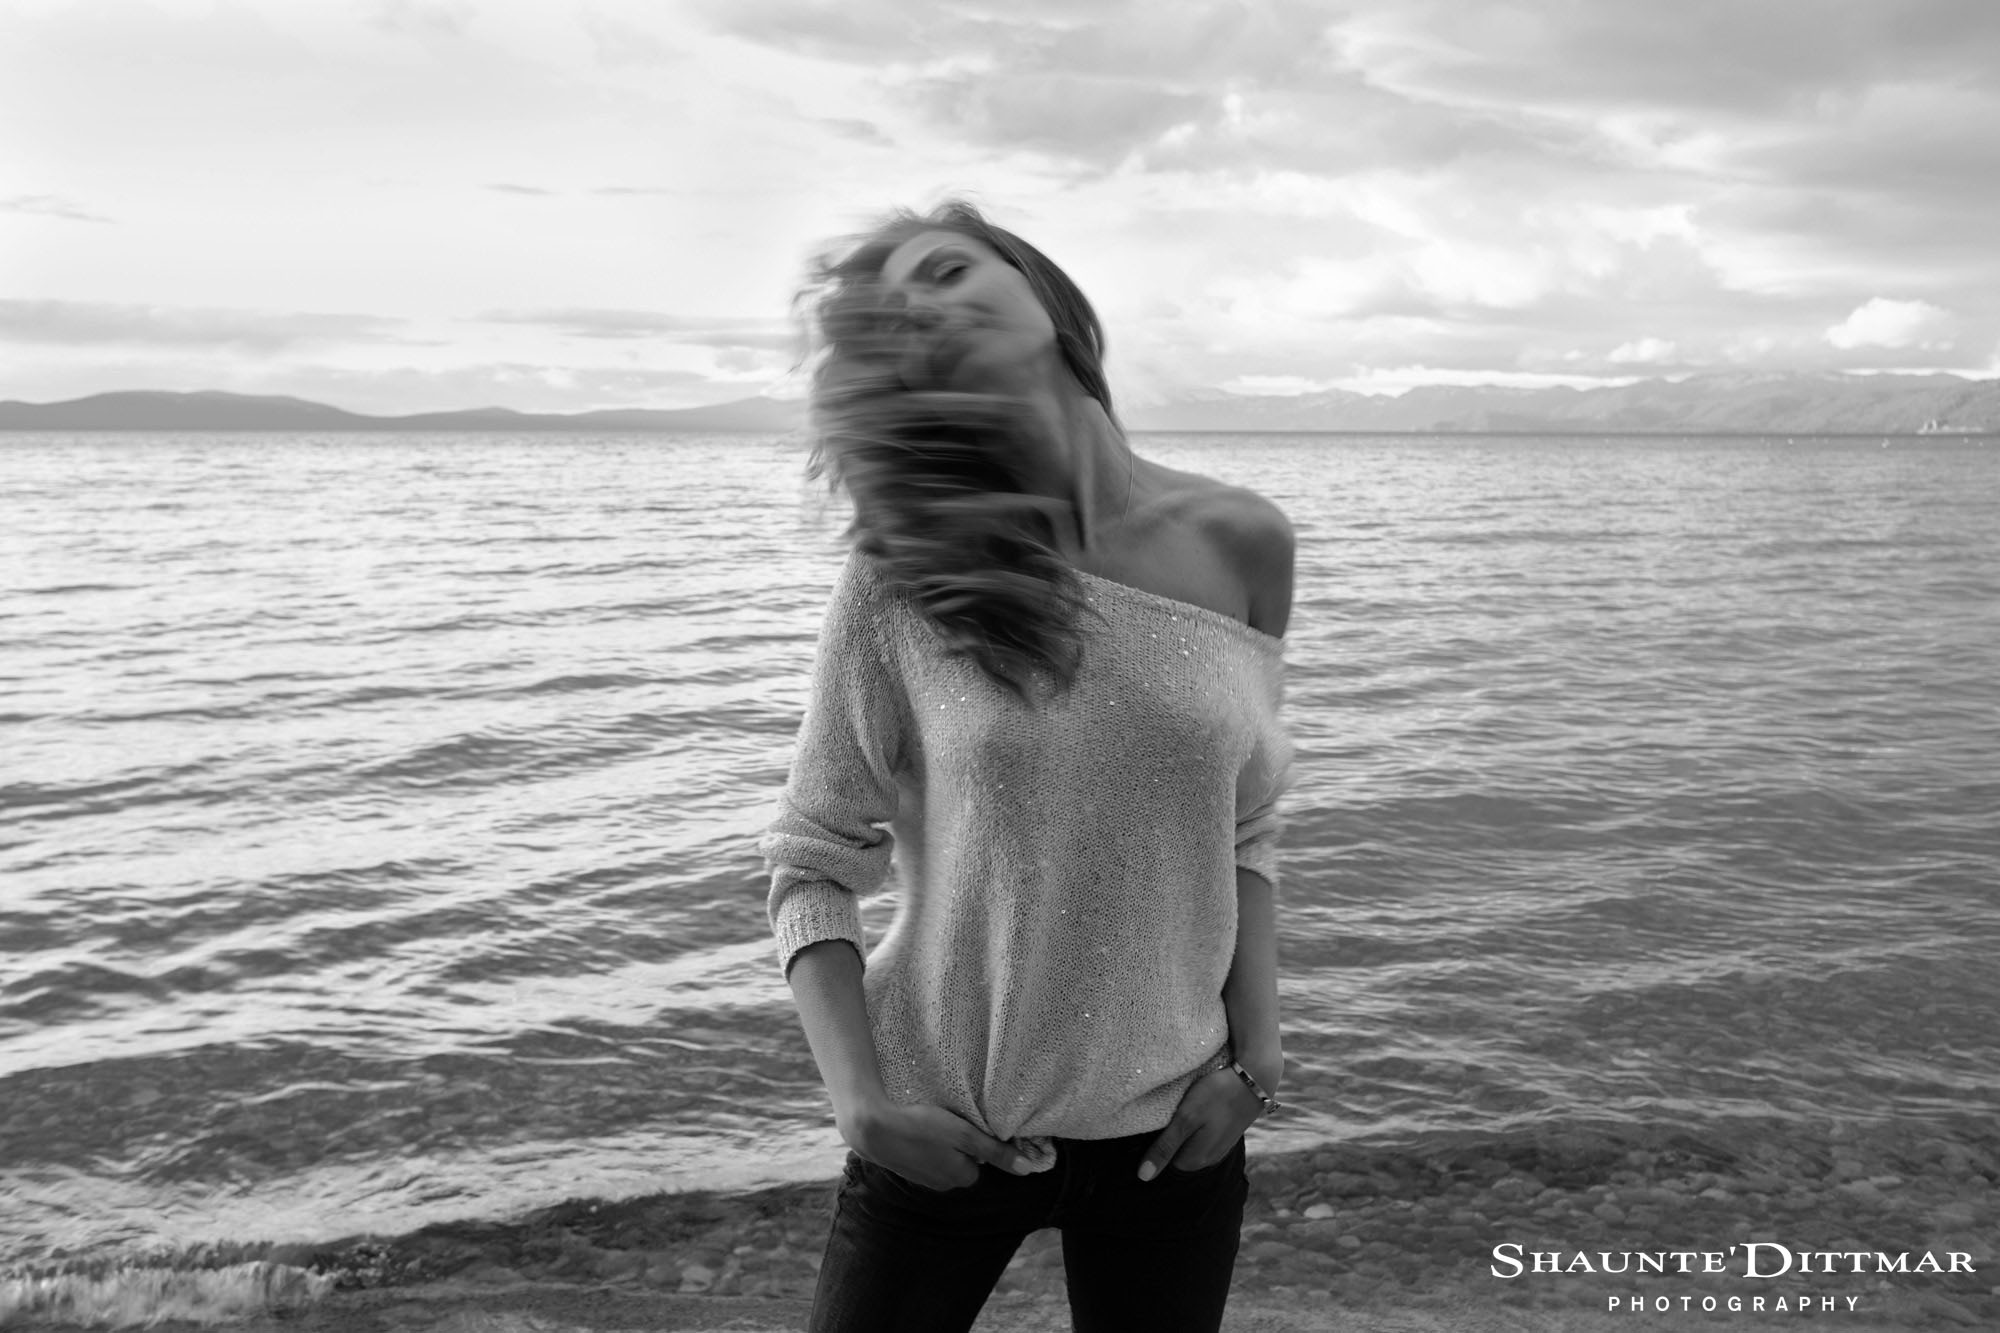 Irryna_Lake_Tahoe_Portraits_Wedding_Photographer_Shaunte_Dittmar_Photography_15.jpg